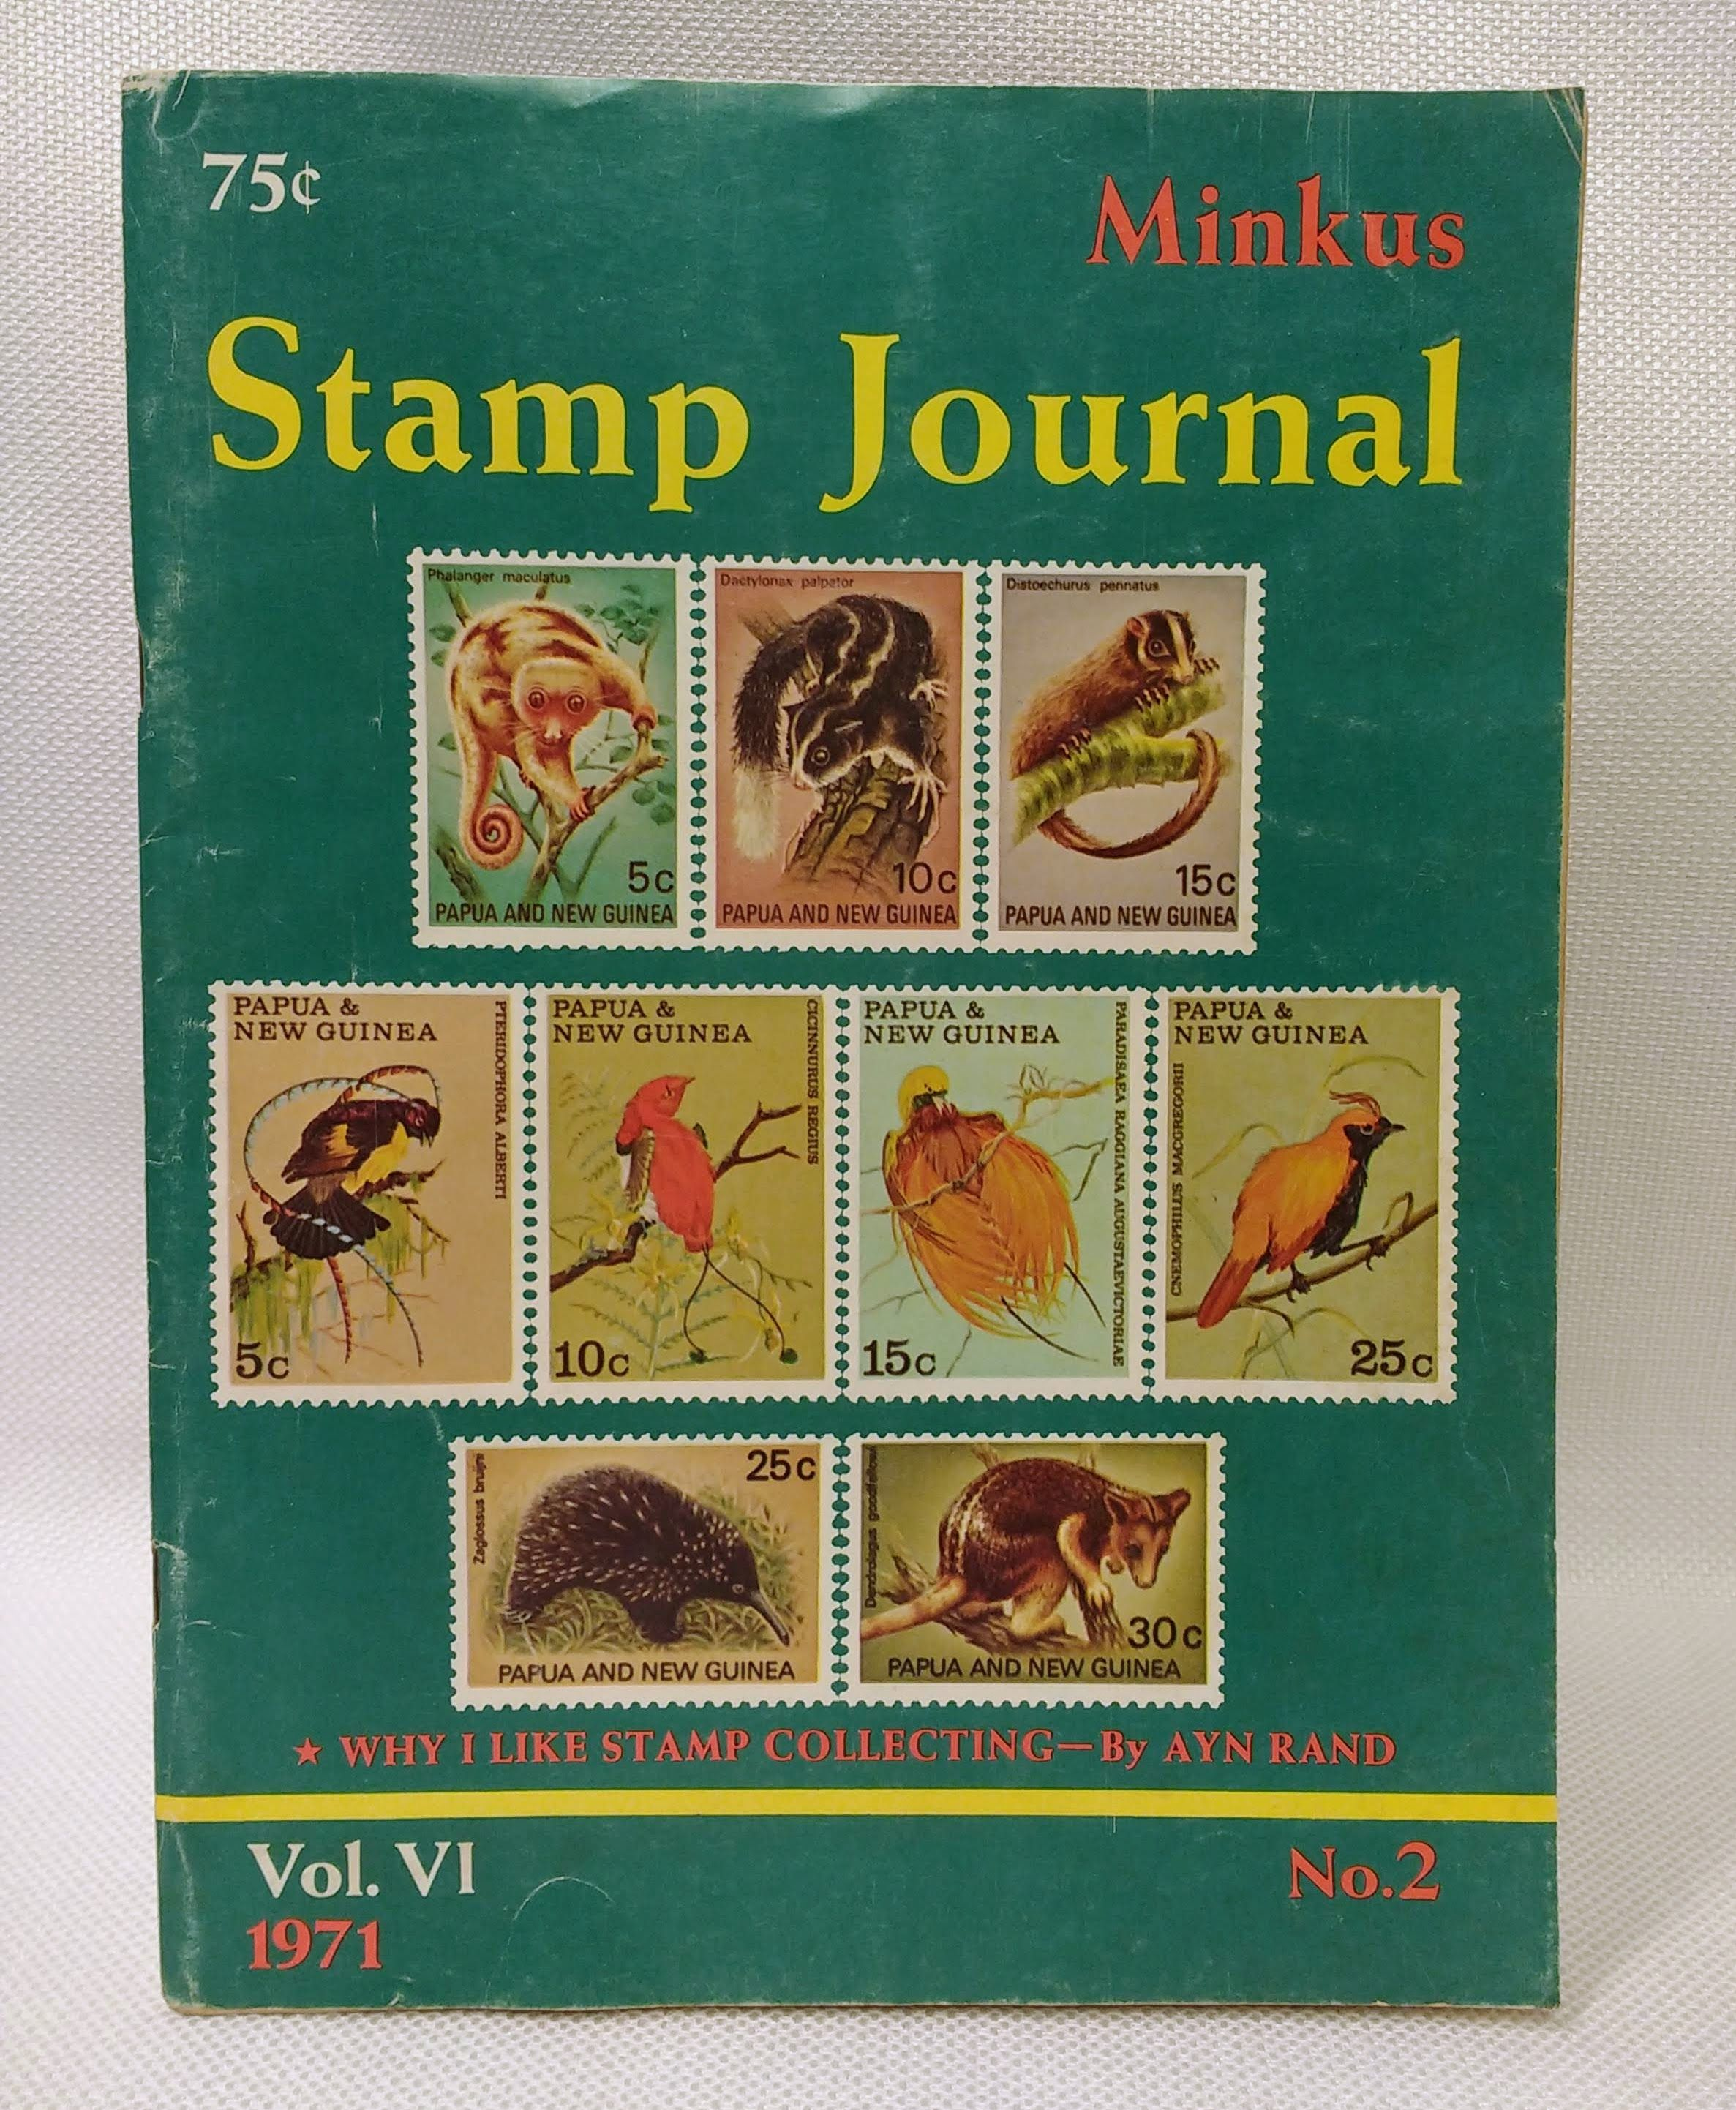 """MINKUS STAMP JOURNAL VOL. VI, No. 2 - 1971 Rare AYN RAND article, """"Why I Like Stamp Collecting, Minkus, Jacques [publisher]; Faries, Belmont [editor]"""